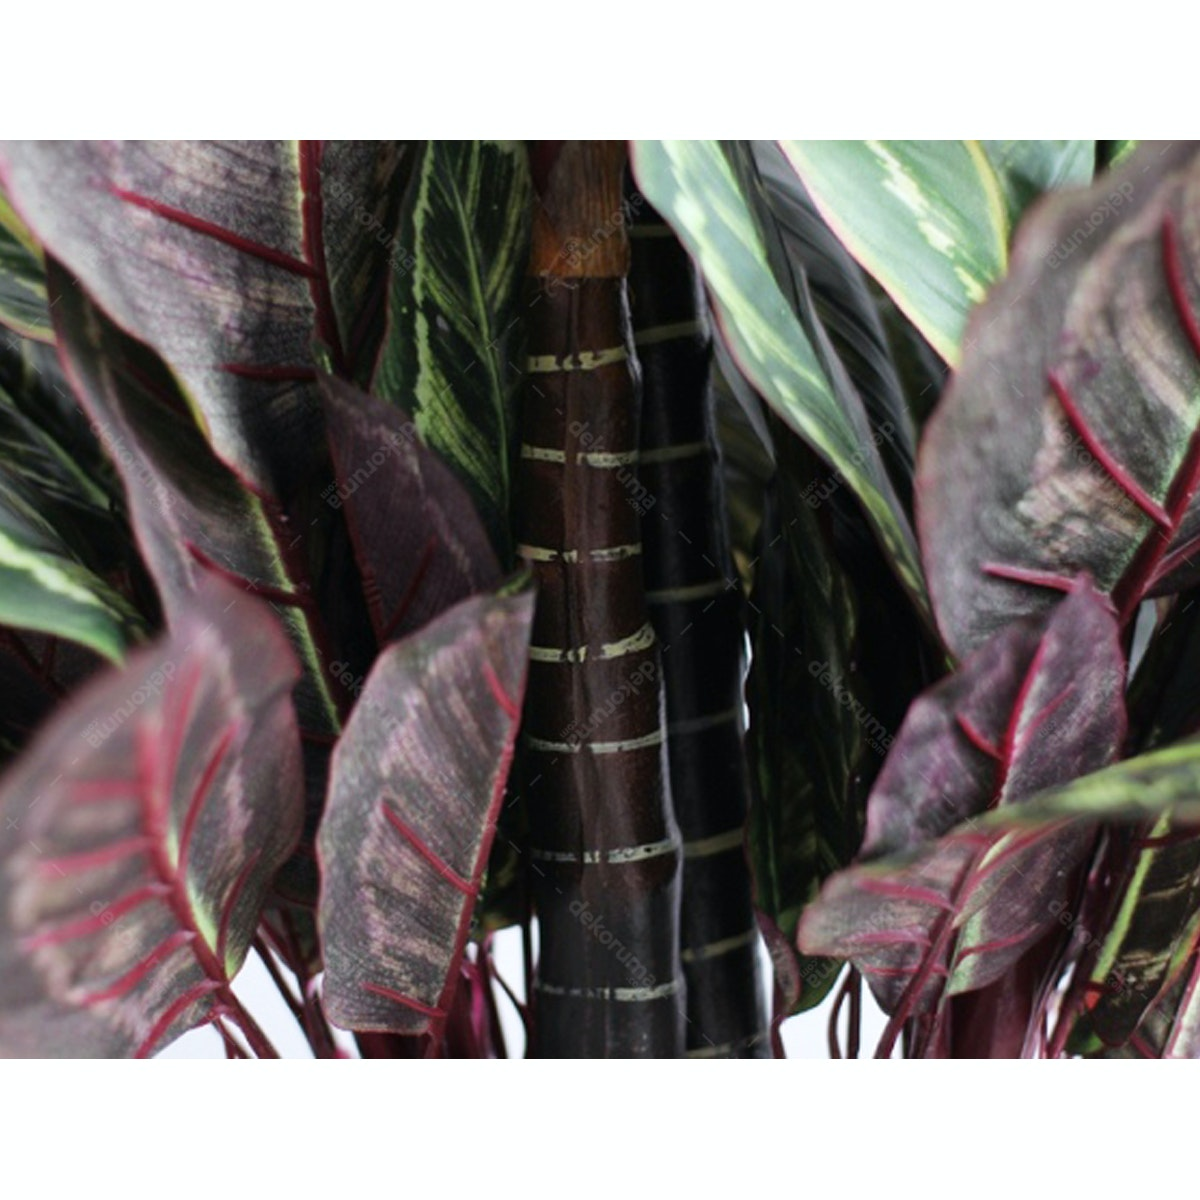 KANA FURNITURE Artificial Plant 2402 Peacock Leaf A3 2402